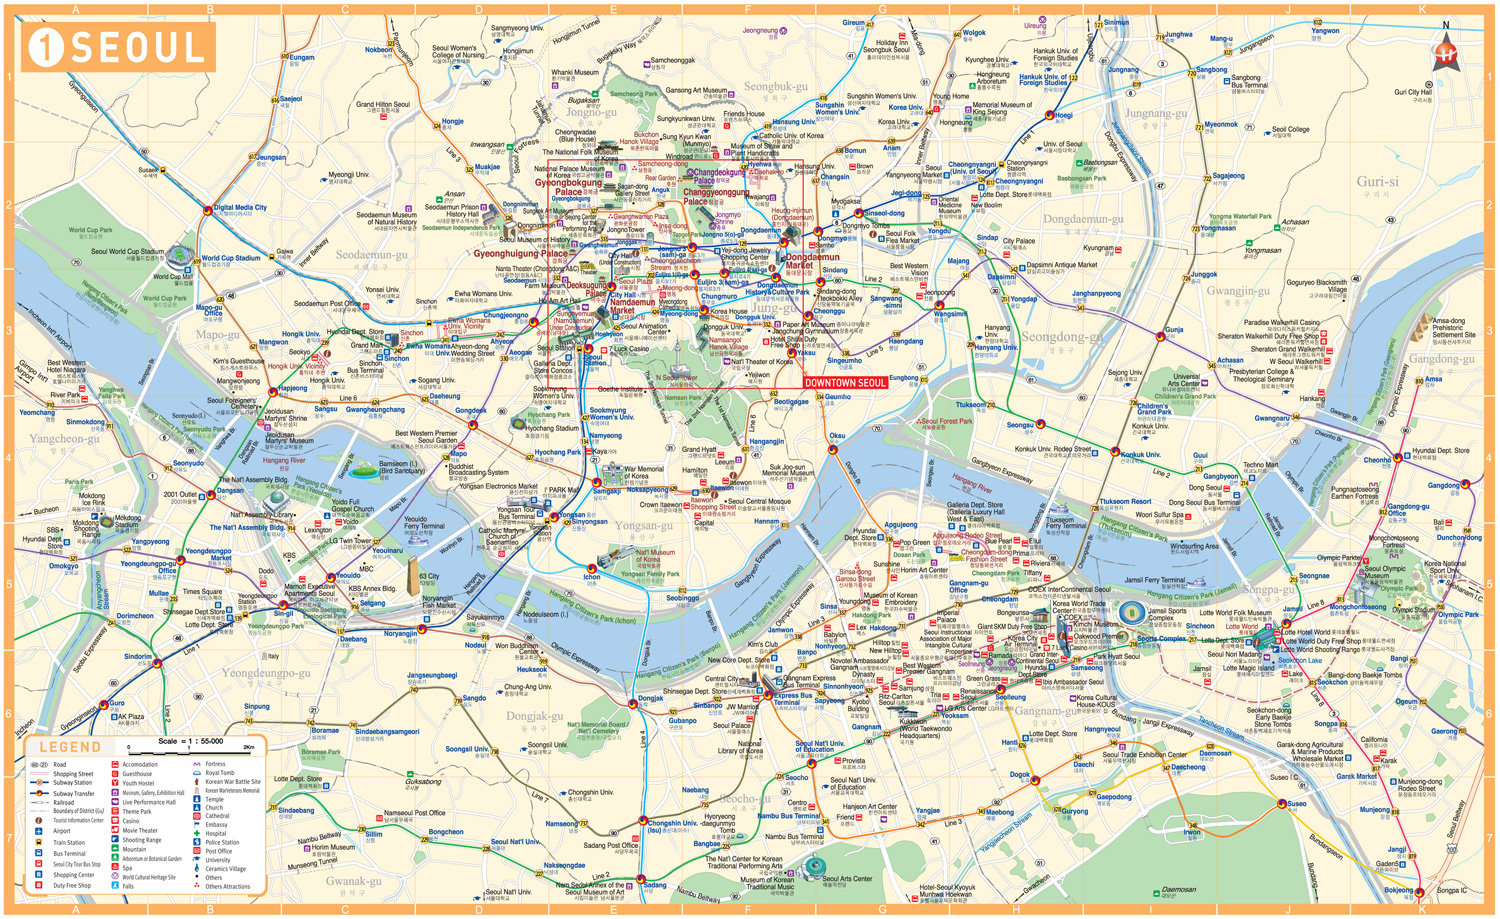 Complete Seoul South Korea Tourism Map – Seoul Tourist Attractions Map